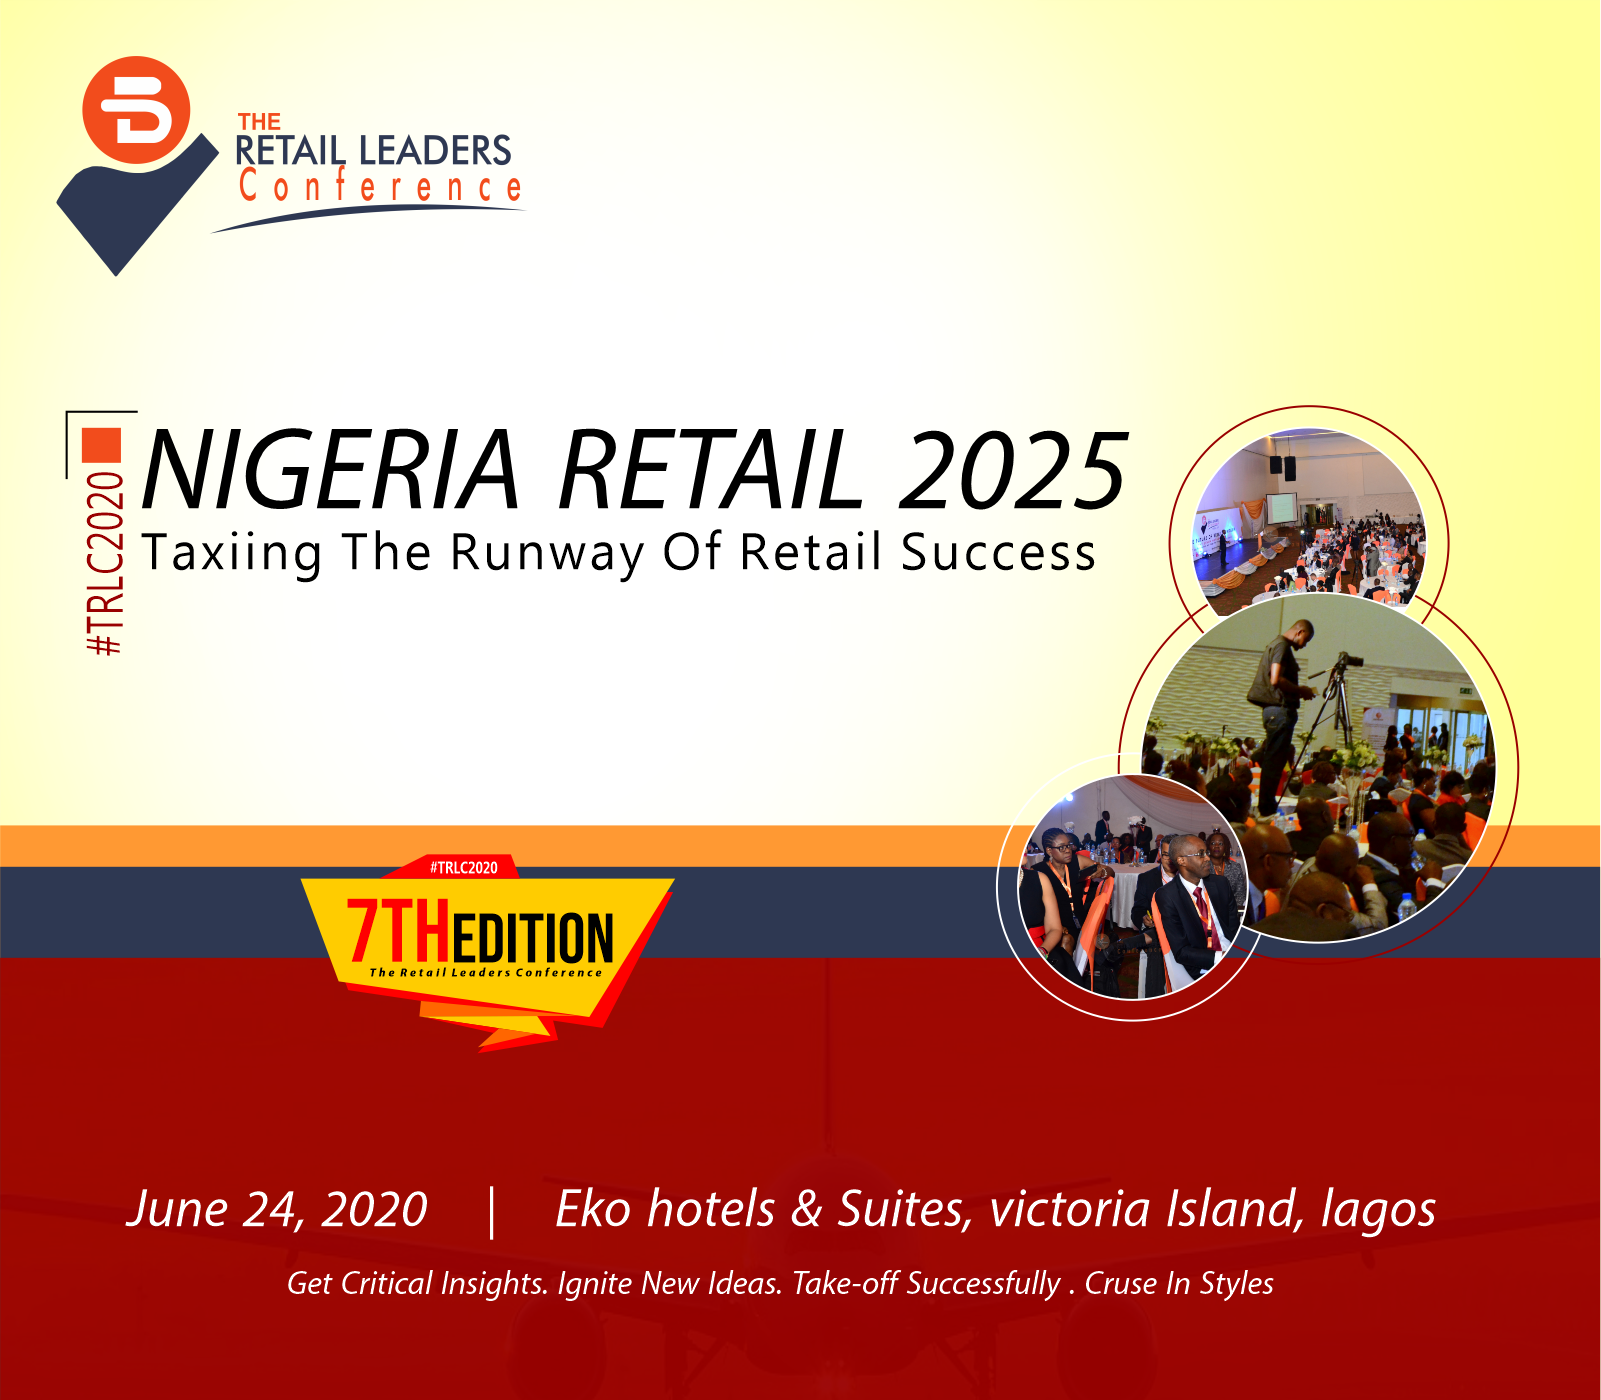 Nigeria Retail 2025 – Taxiing The Runway Of Retail Success